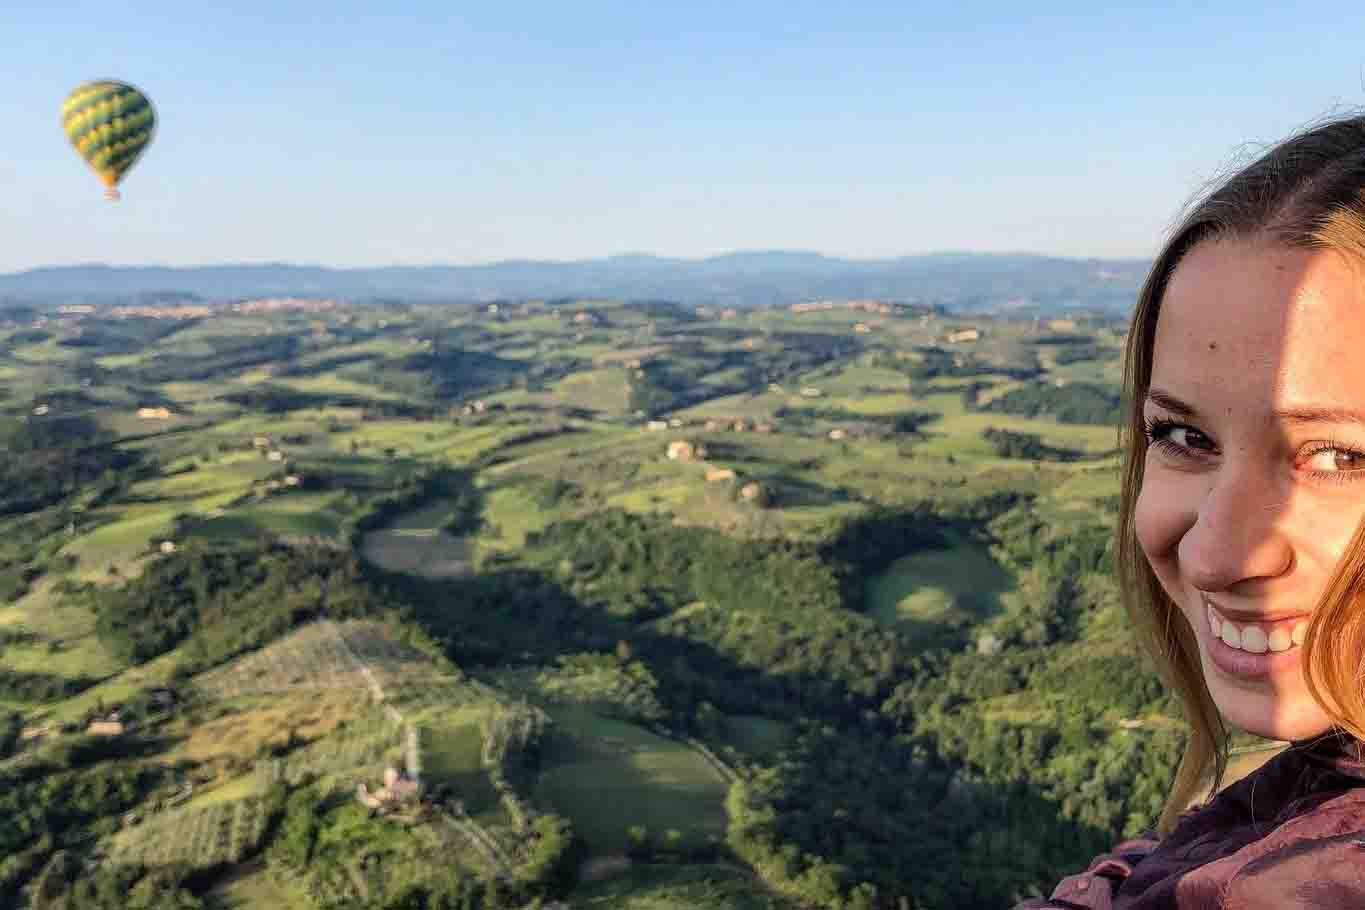 View of tuscany on the Balloon